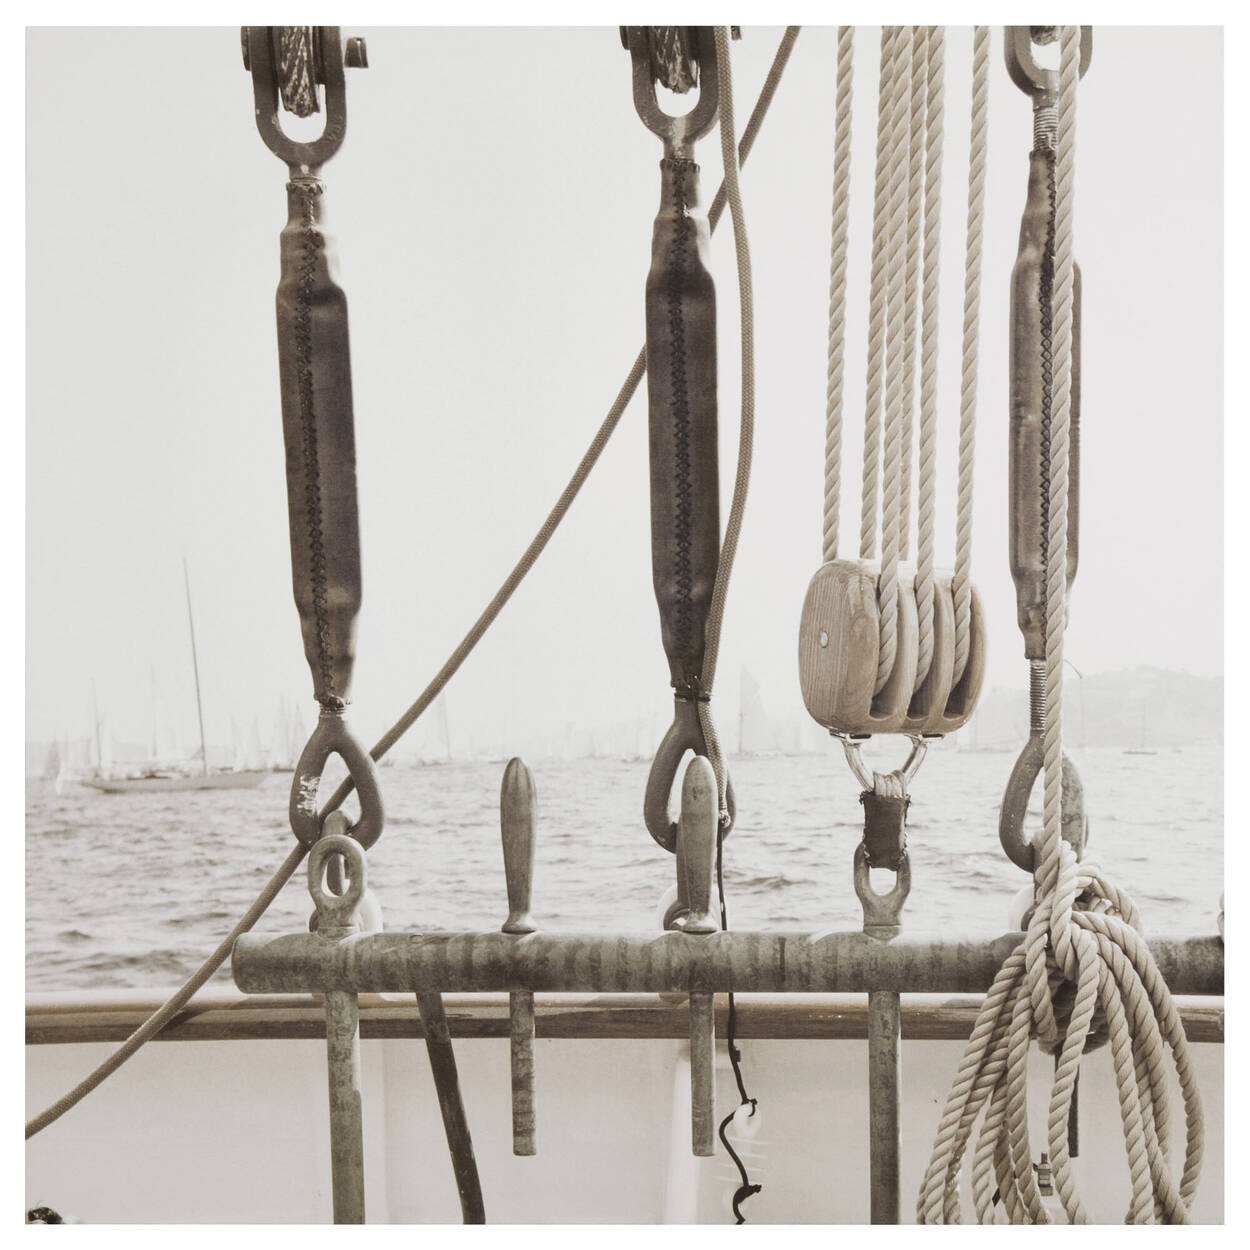 Pulleys on Boat Printed Canvas